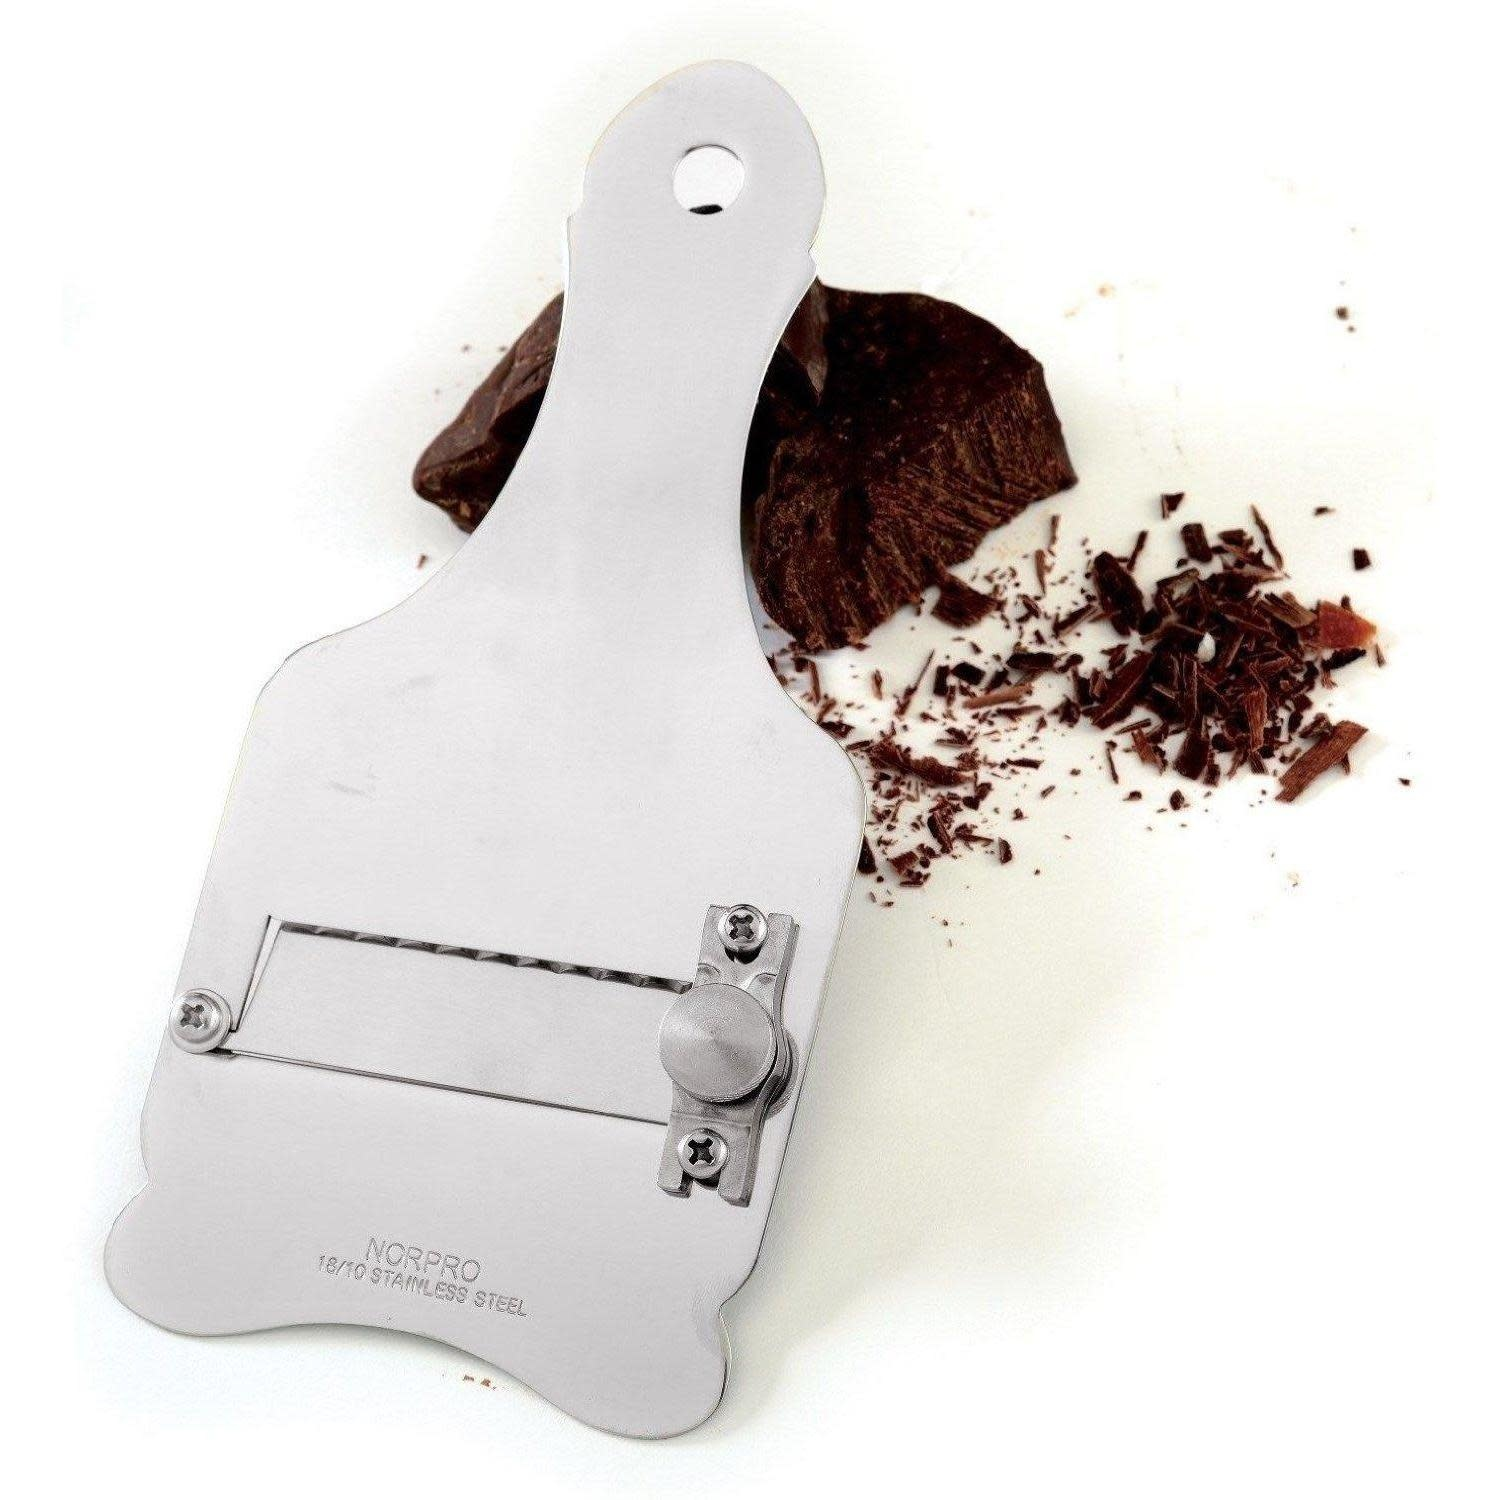 Norpro Chocolate Shaver Metal-stainless Steel